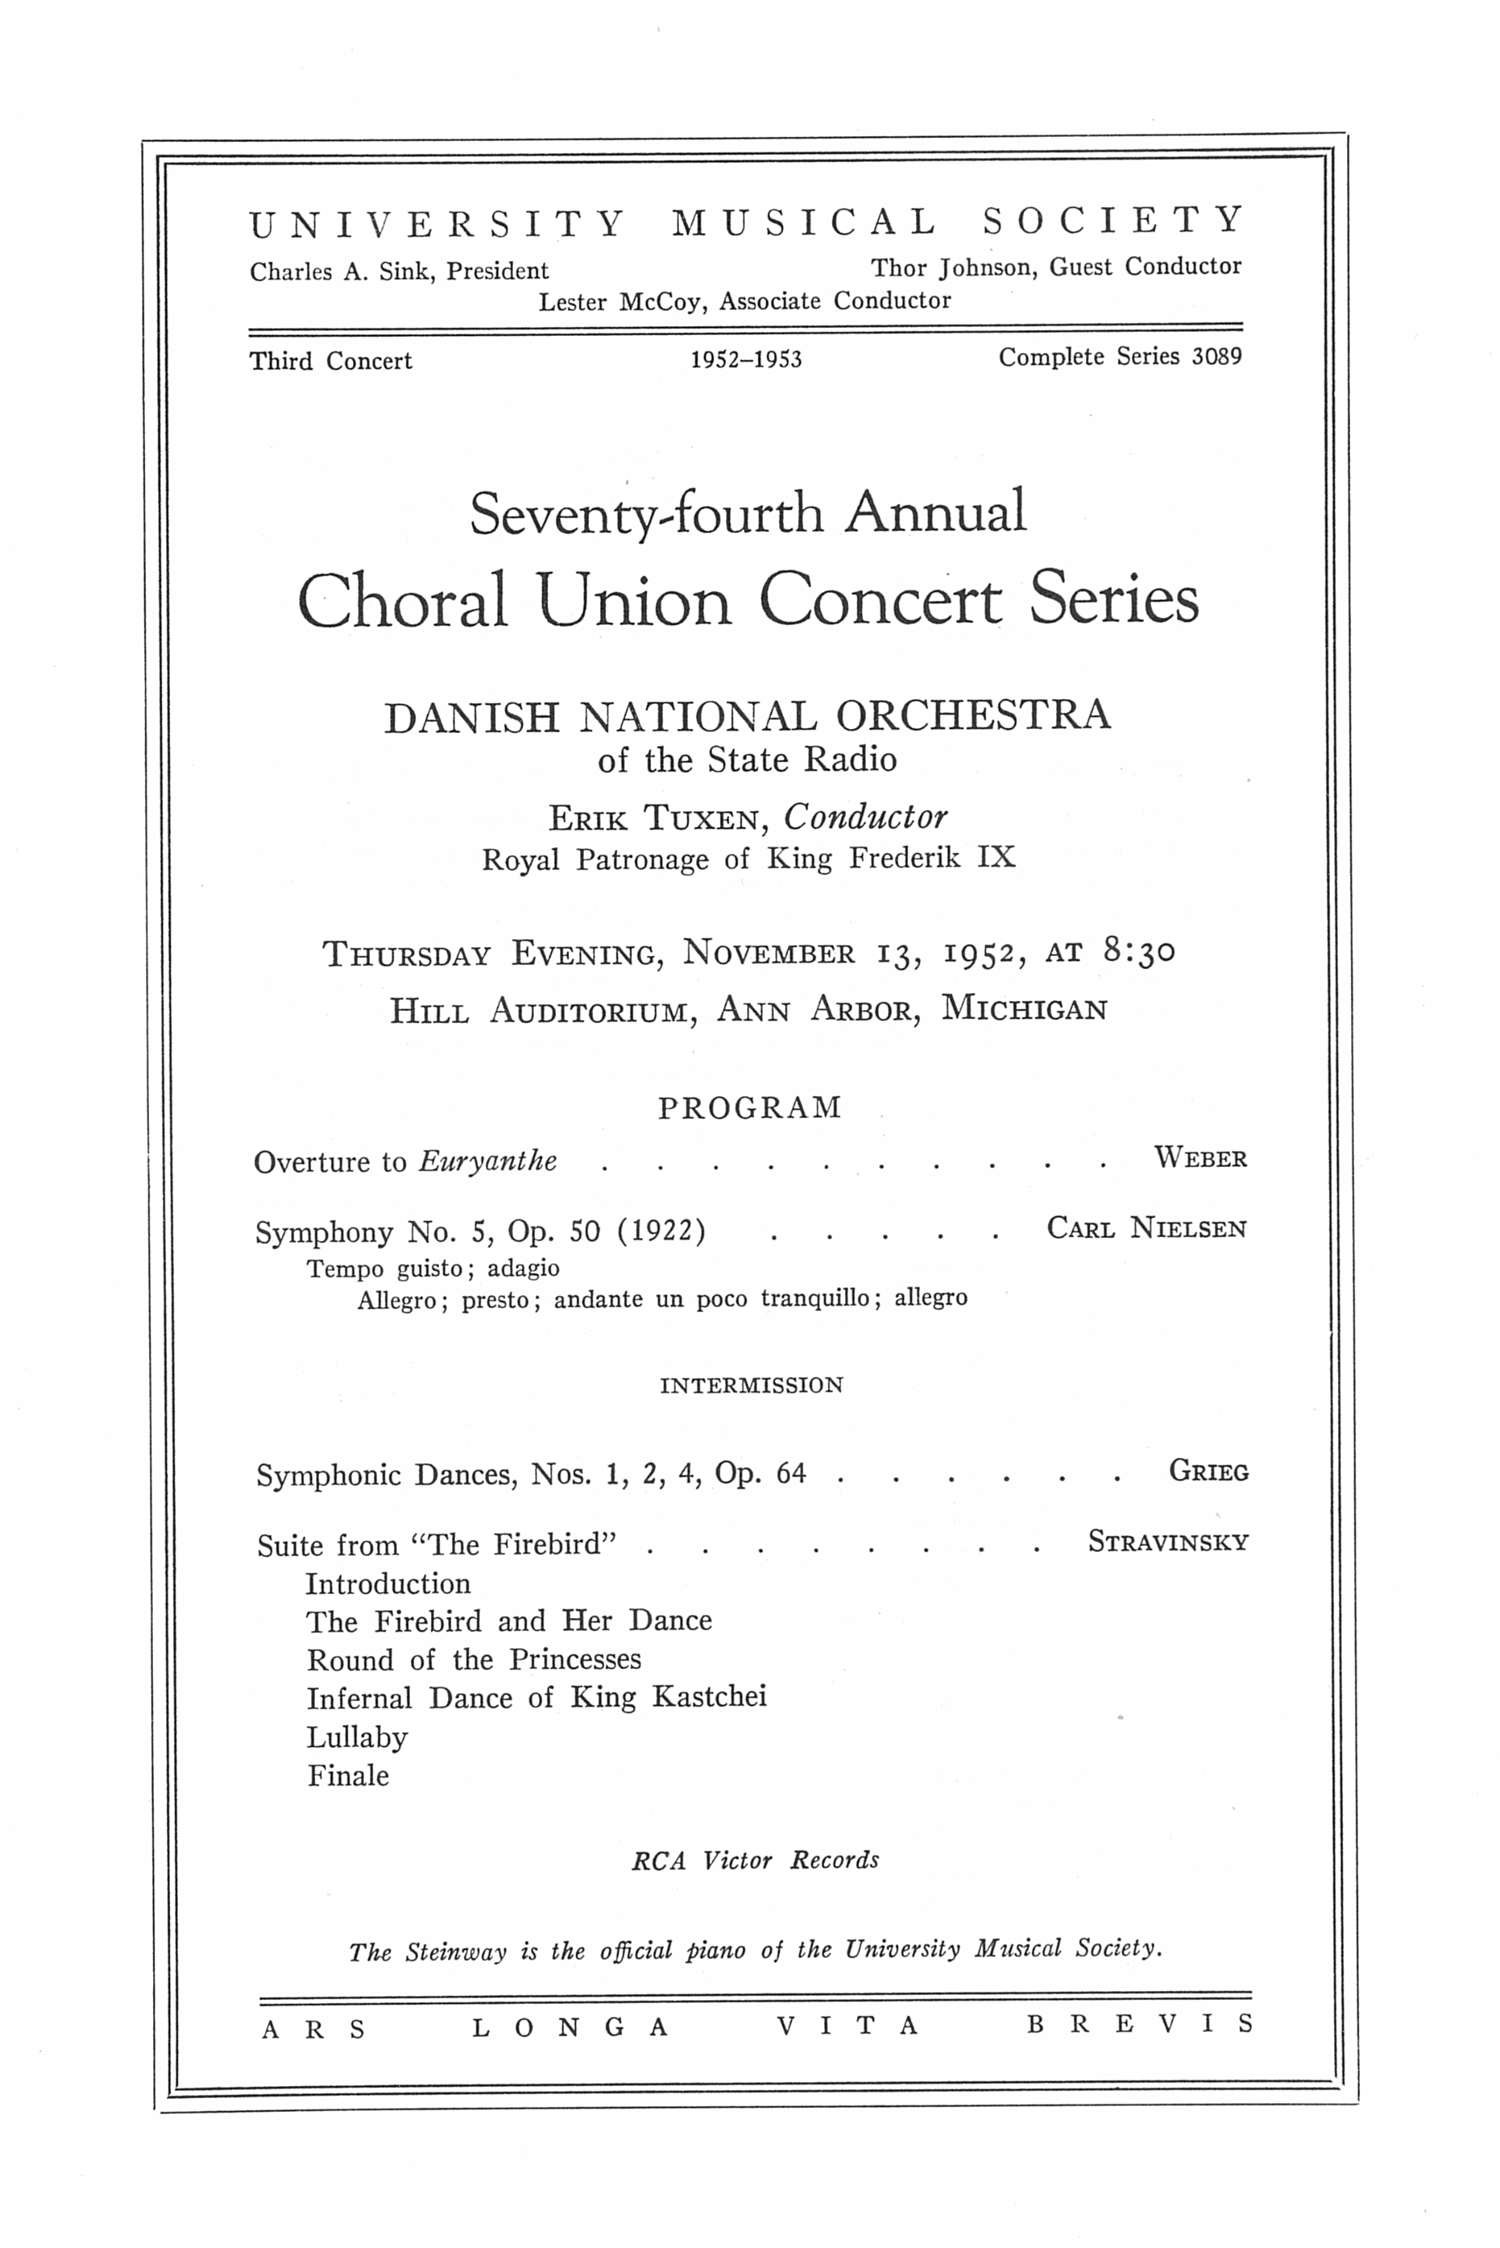 UMS Concert Program, Thursday Evening, November 13, 1952: Seventy-fourth Annual Choral Union Concert Series -- Danish National Orchestra image